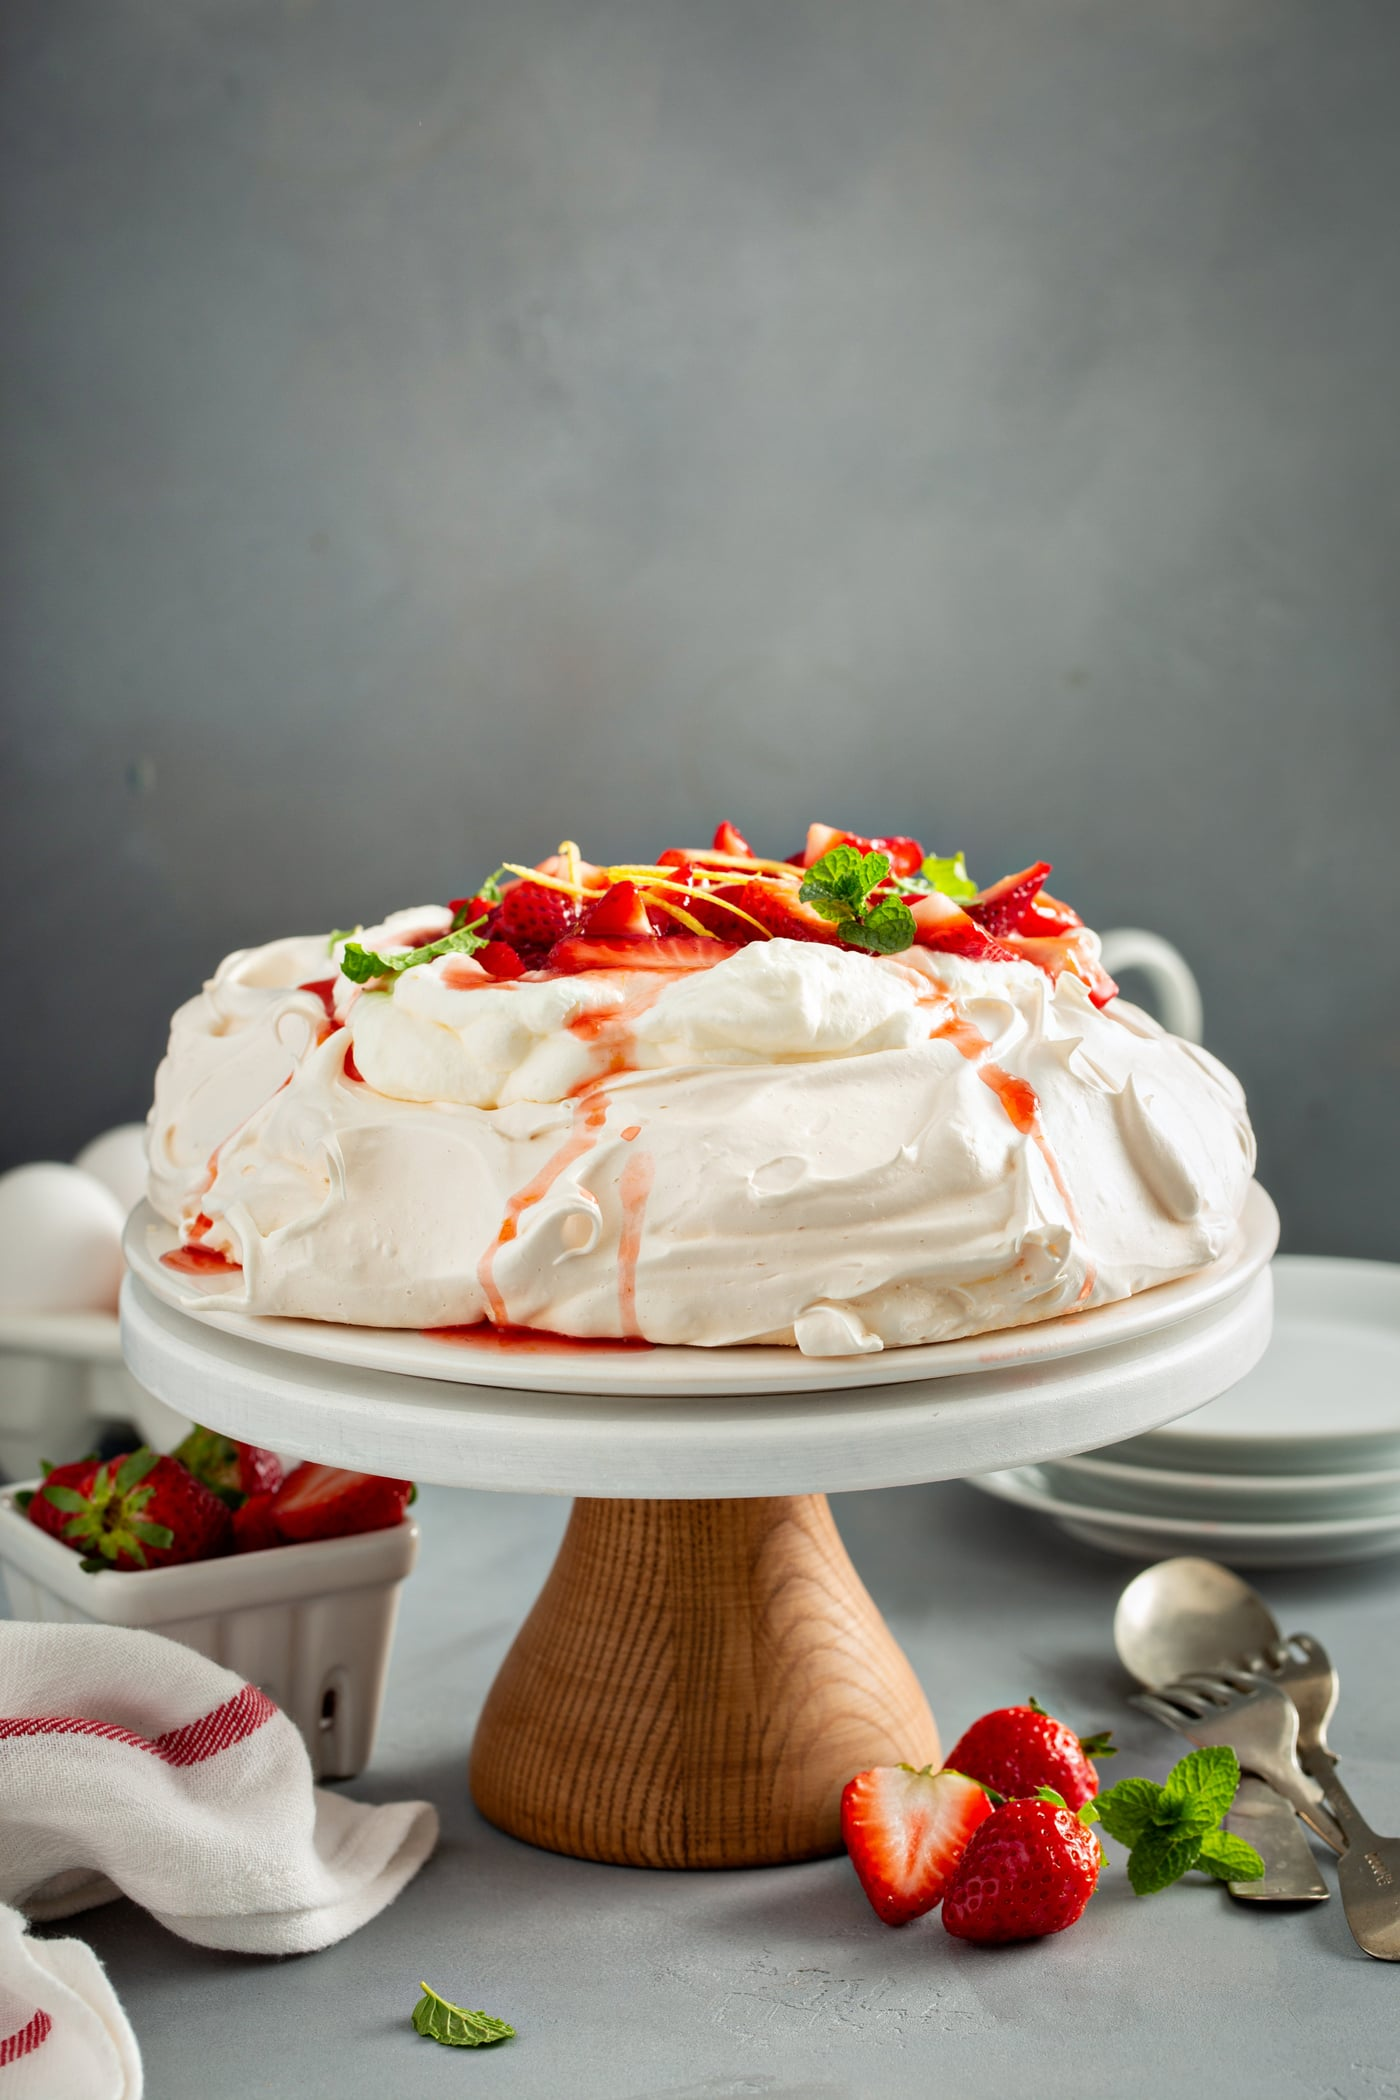 A cake platter holding pavlova that has been topped with sliced strawberries, slivers of lemon rind, and mint leaves. There are three white dessert plates, a carton of eggs, a container of strawberries, red striped kitchen towel and forks and spoons laying on the table around the platter of pavlova.